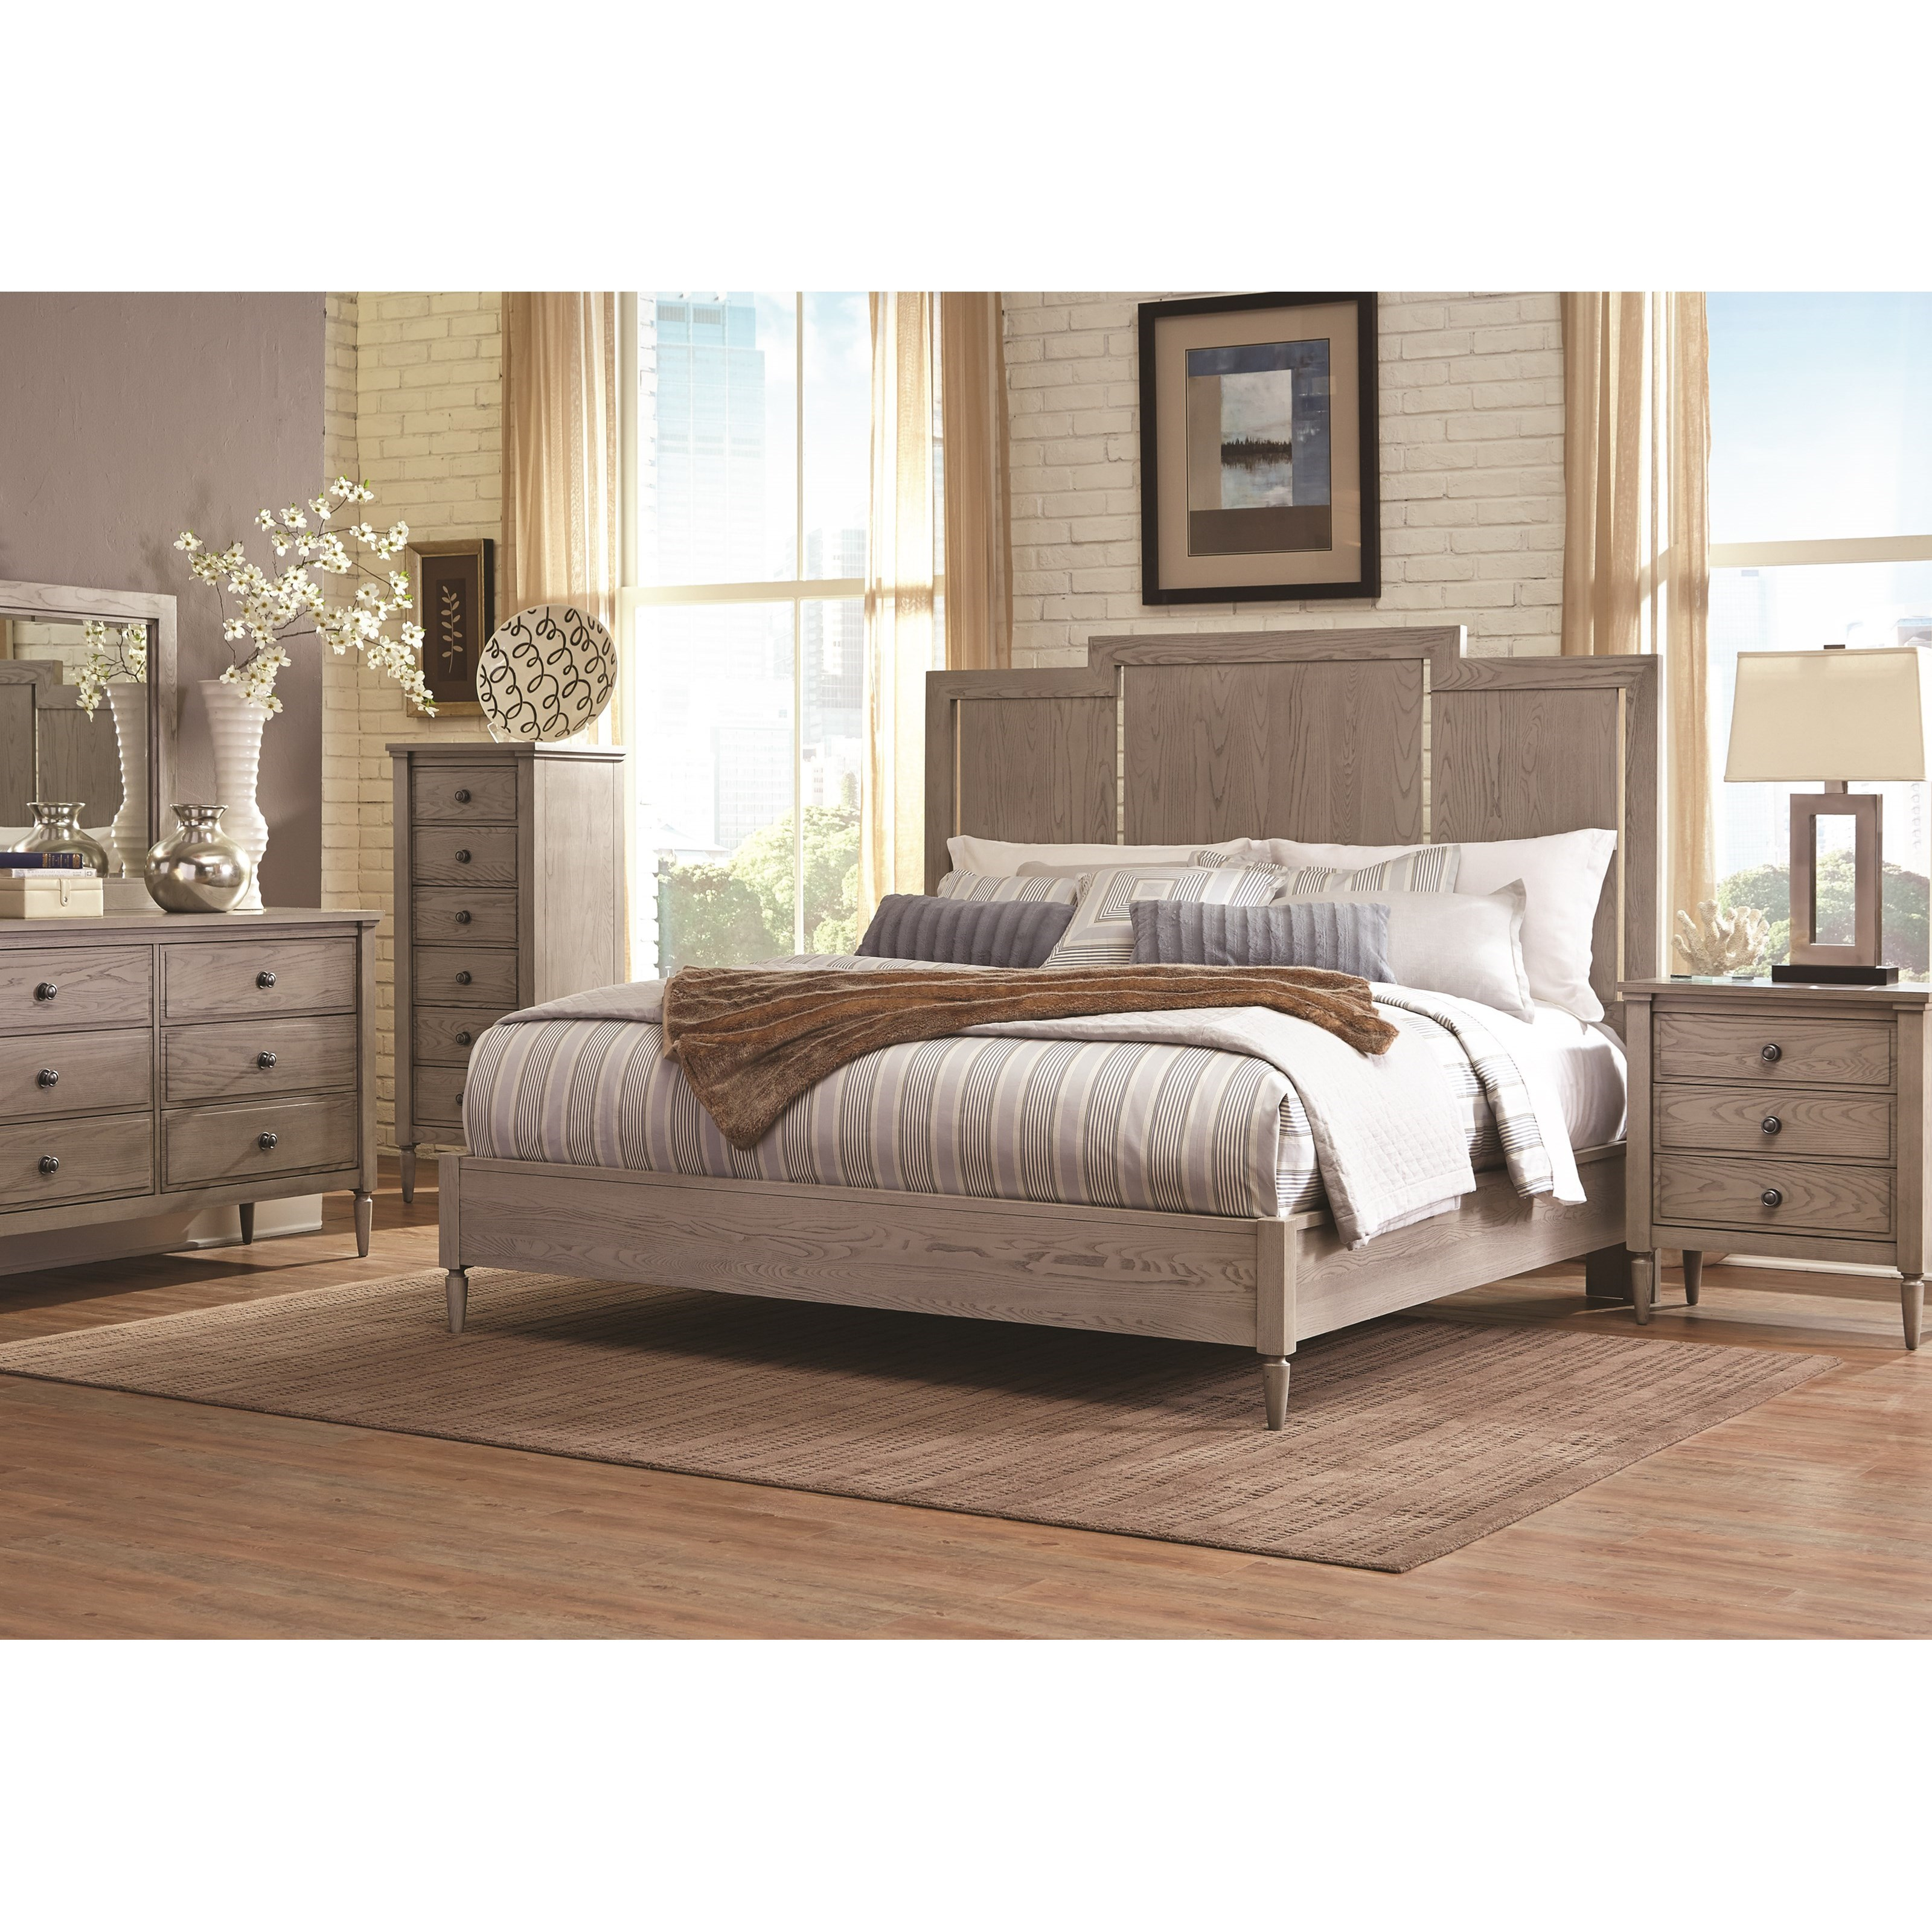 Durham Dunns Valley King Bedroom Group - Item Number: 142 K Bedroom Group 4